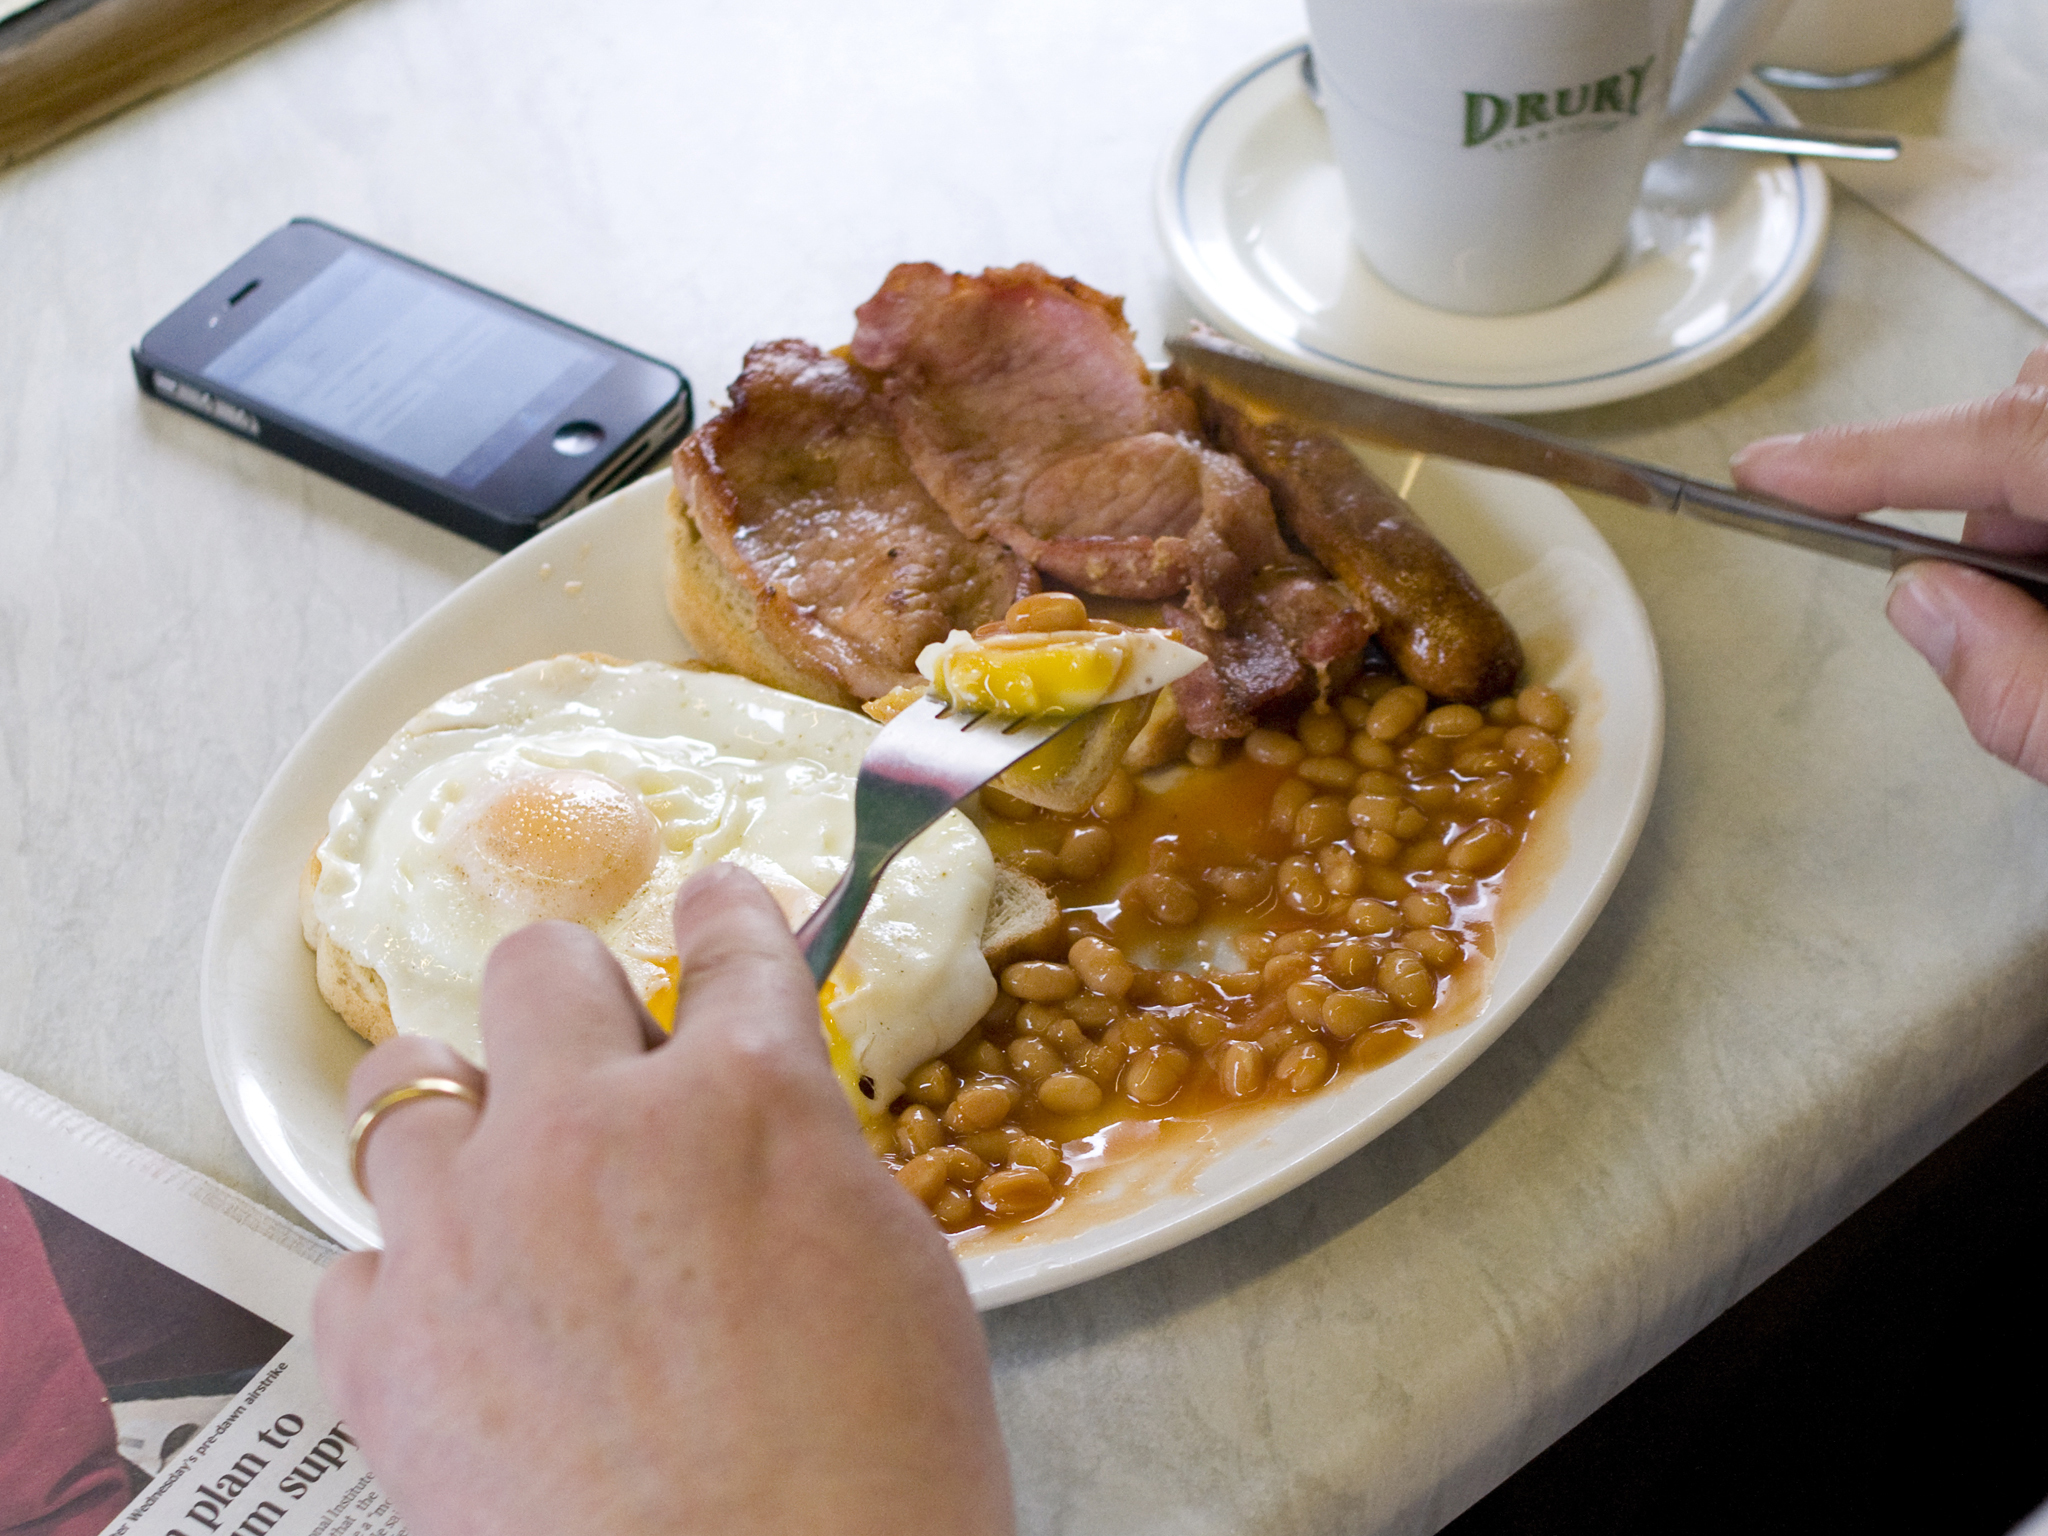 London's best greasy spoon cafes, river cafe